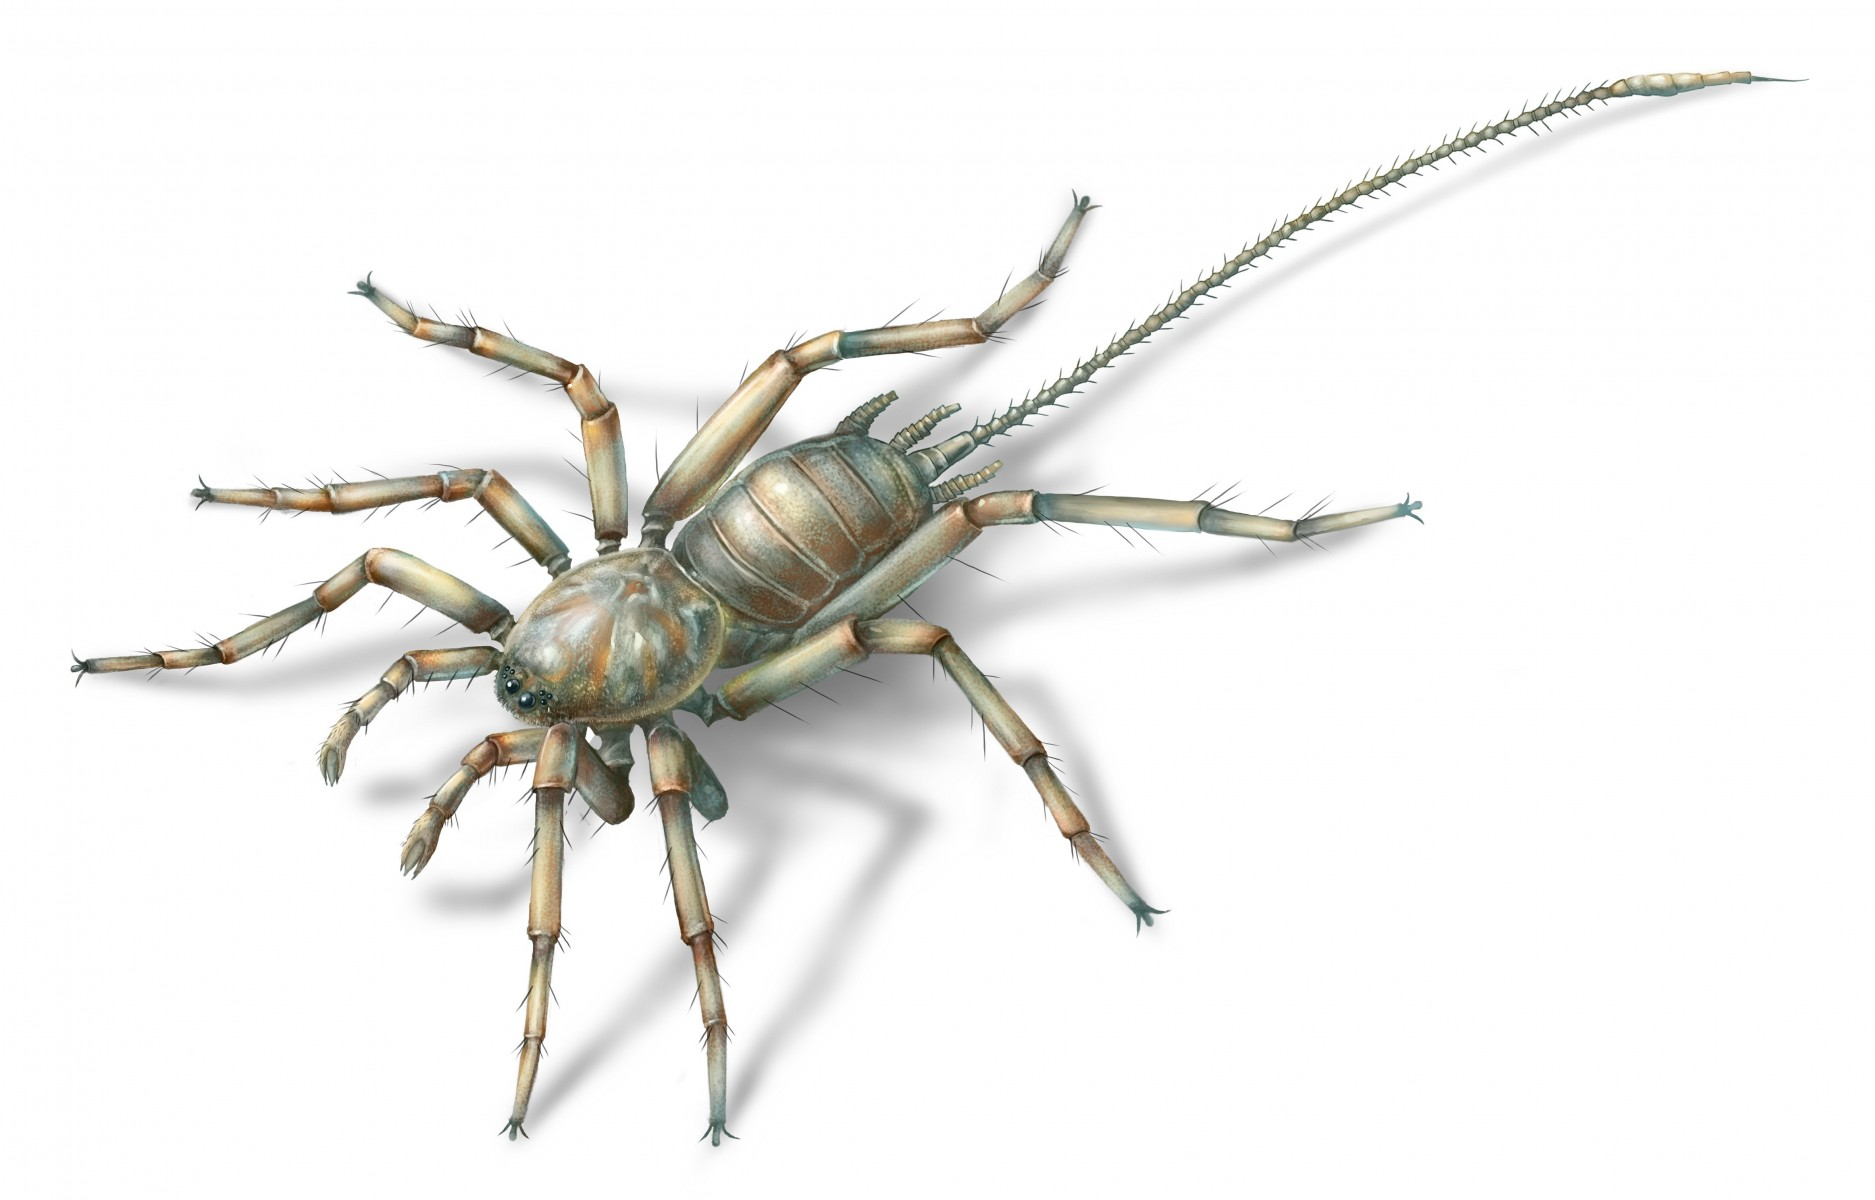 Myanmar: Spider with Scorpion-Like Tail Found by Scientists